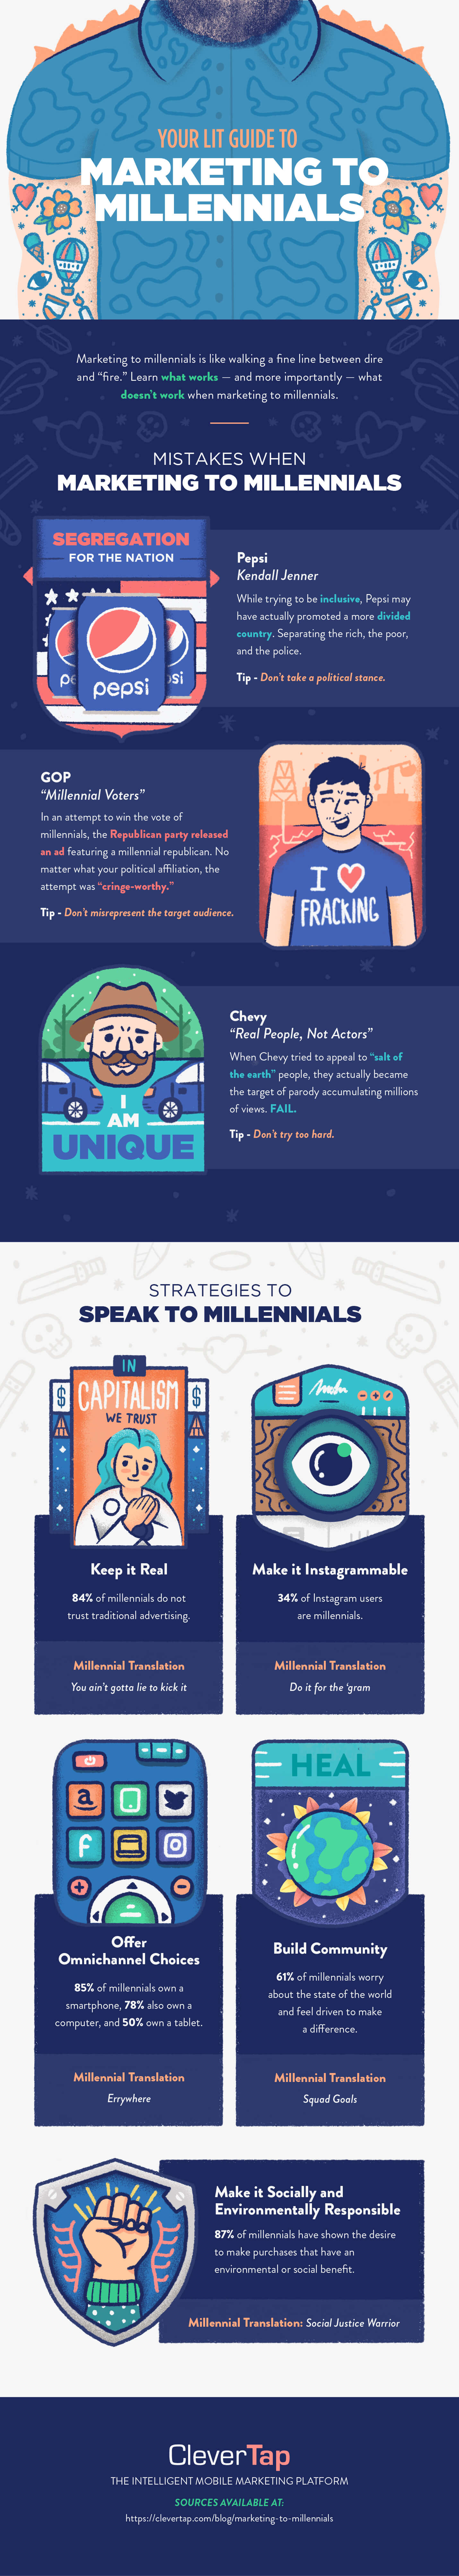 Marketing to Millennials infographic by  CleverTap